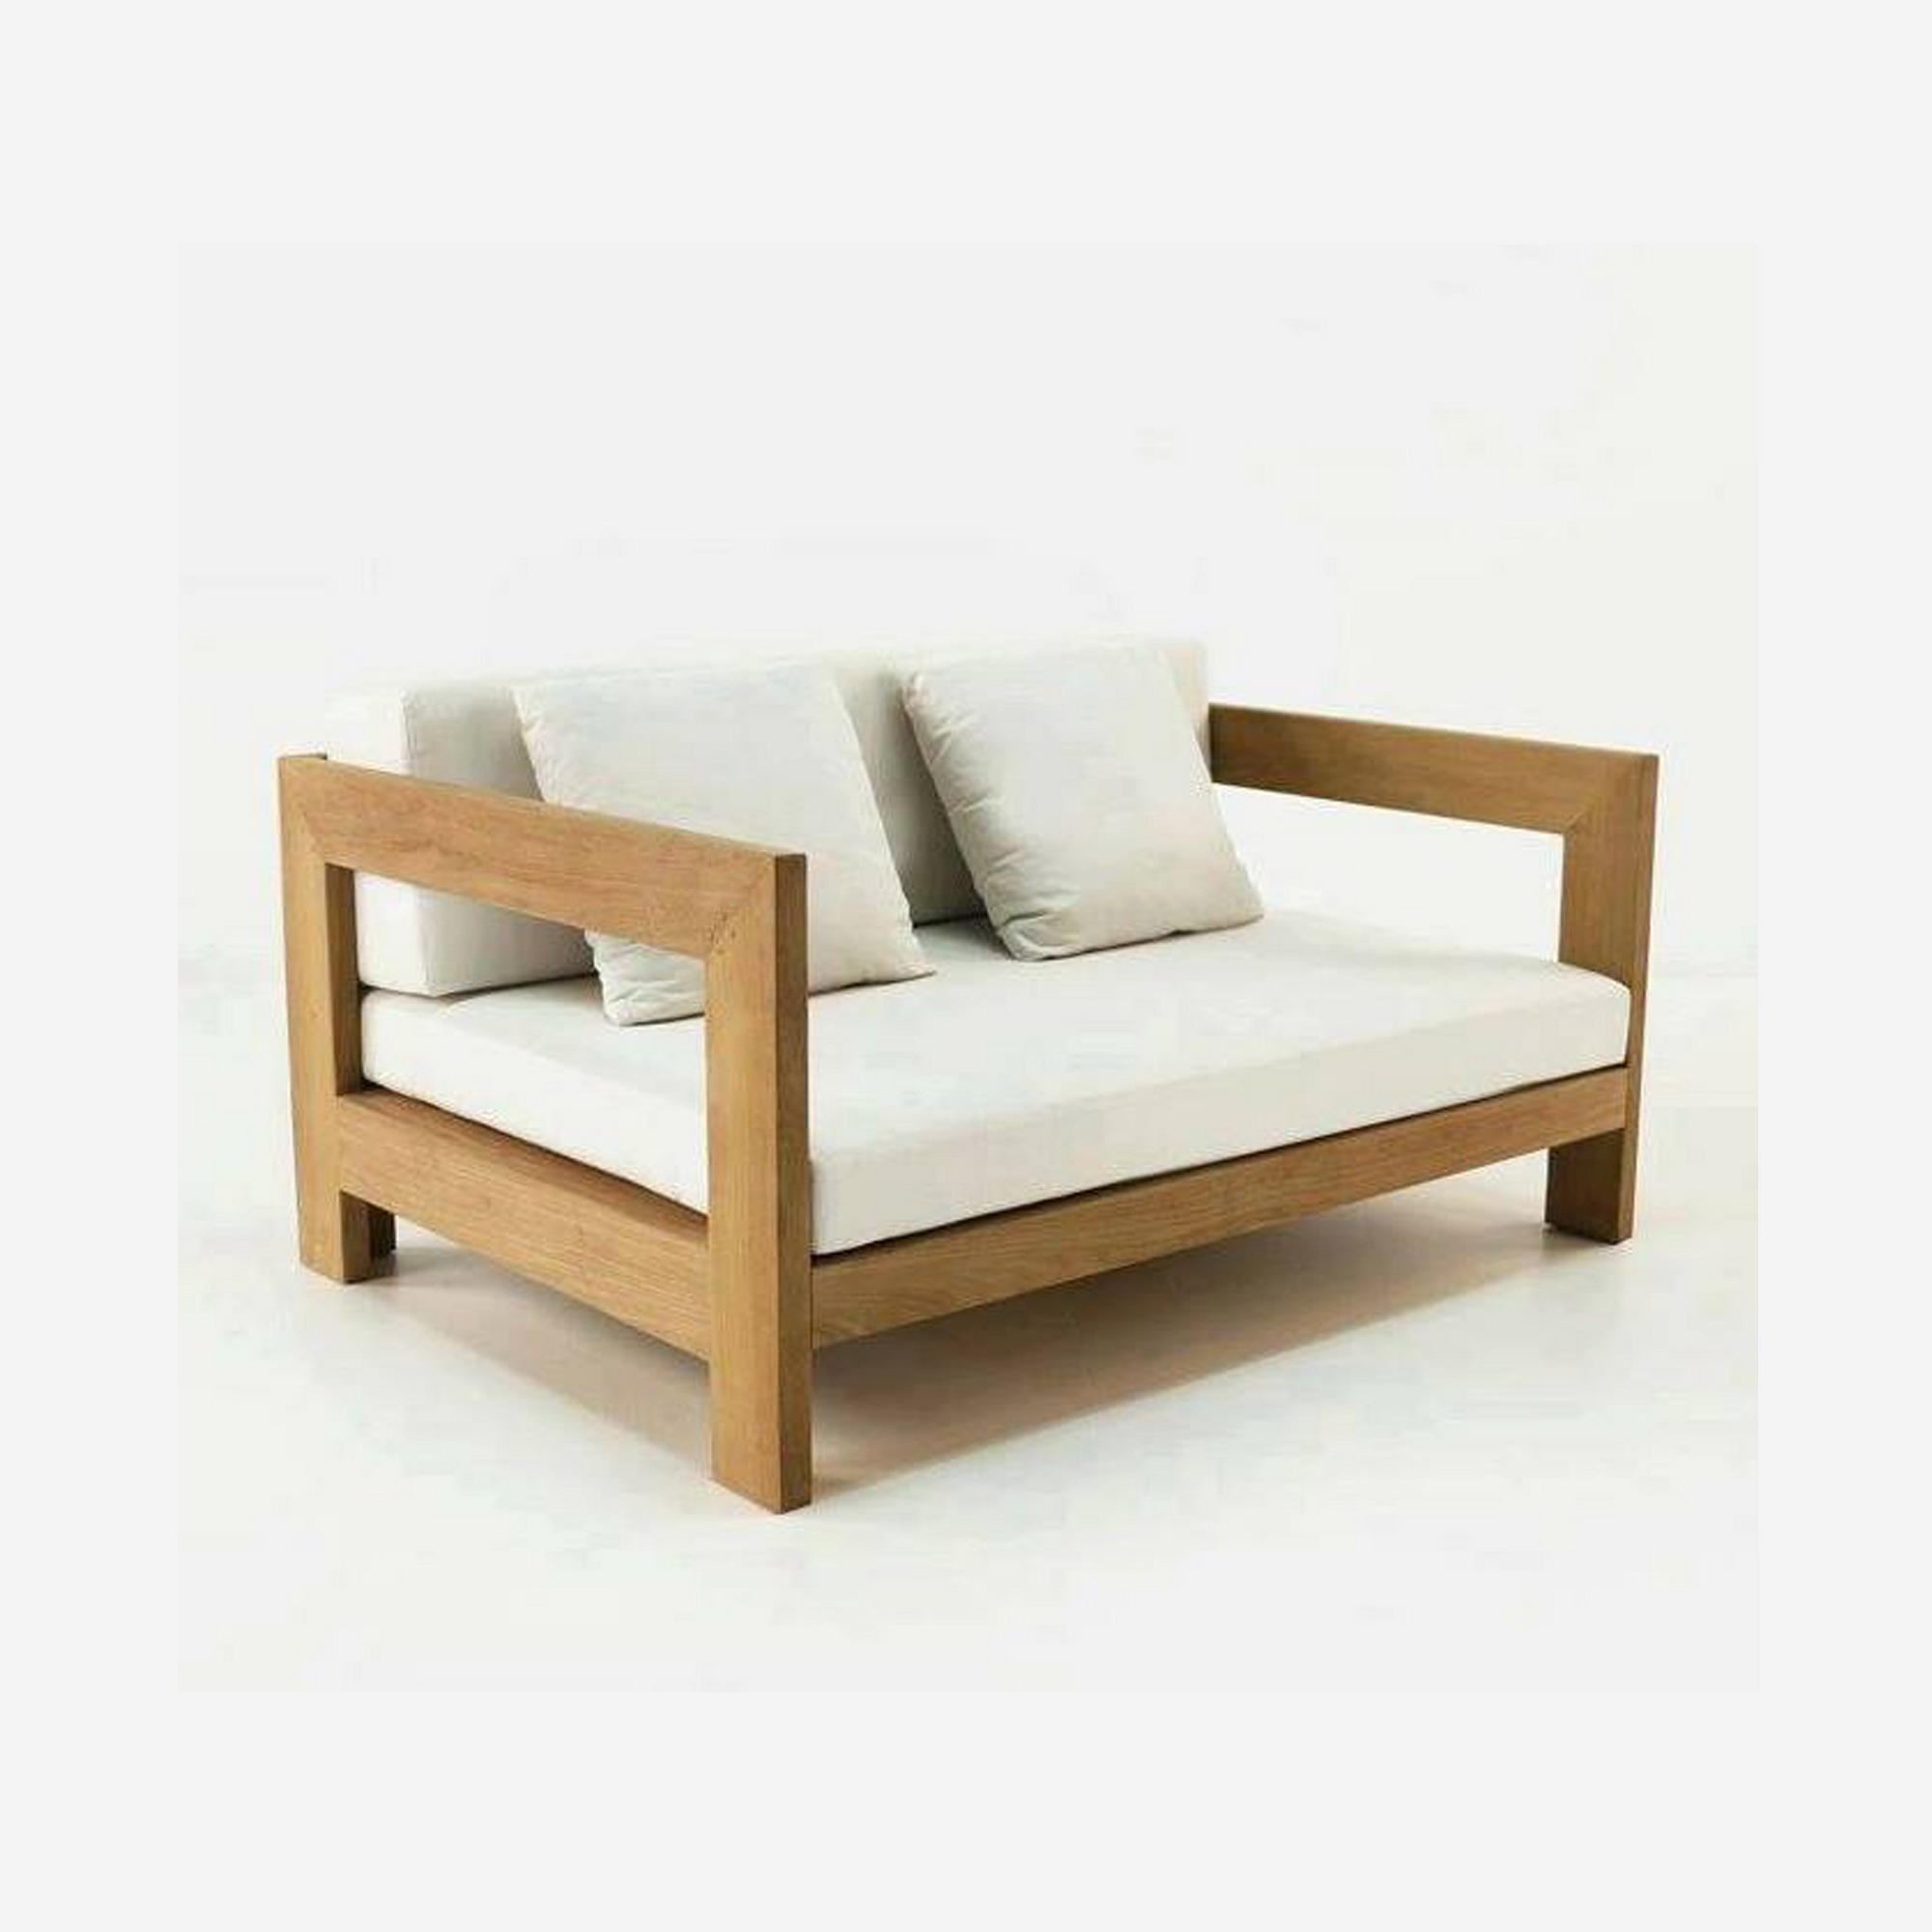 2 Seater Wooden Sofa - Lacquer: Buy Online At Best Prices In Bangladesh | Daraz.com.bd